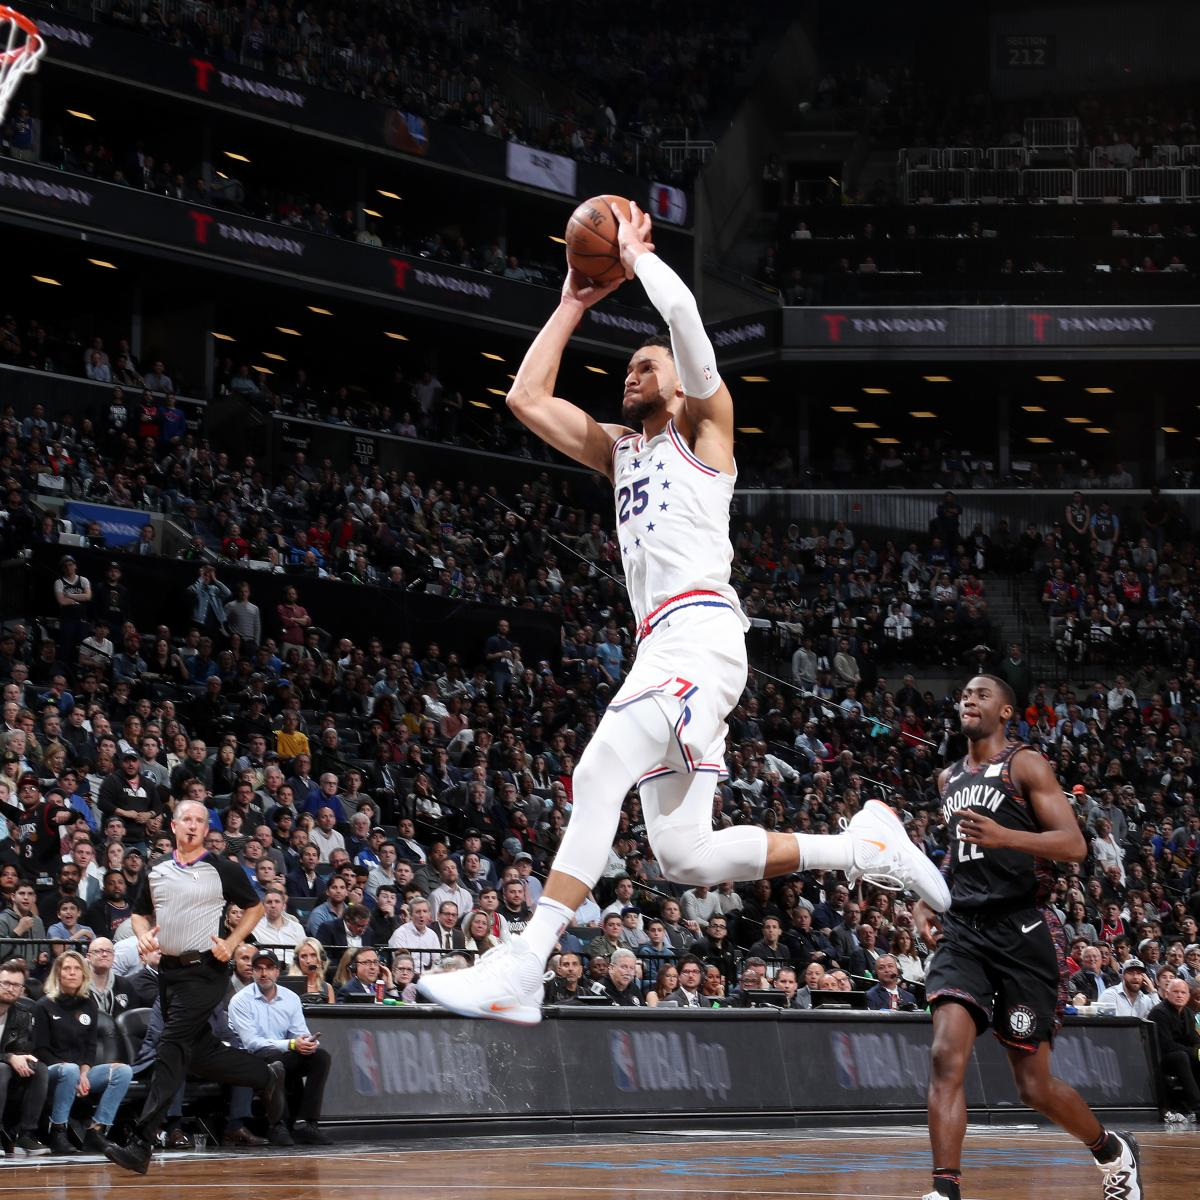 Warriors Vs Nets Full Game Highlights: Ben Simmons, 76ers Take 2-1 Series Lead Over Nets Without